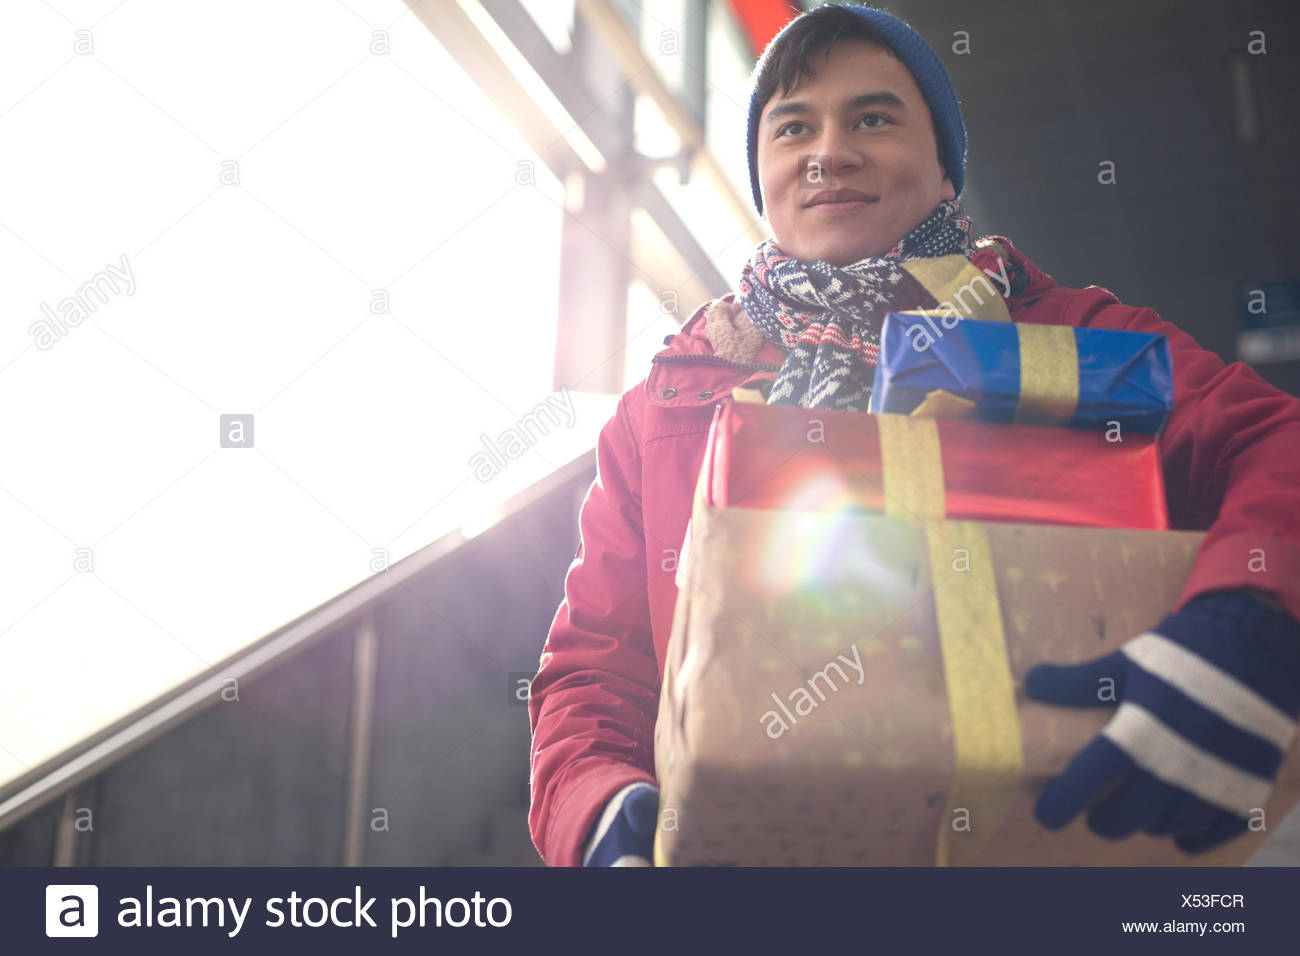 Low angle view of smiling man holding gifts by window - Stock Image